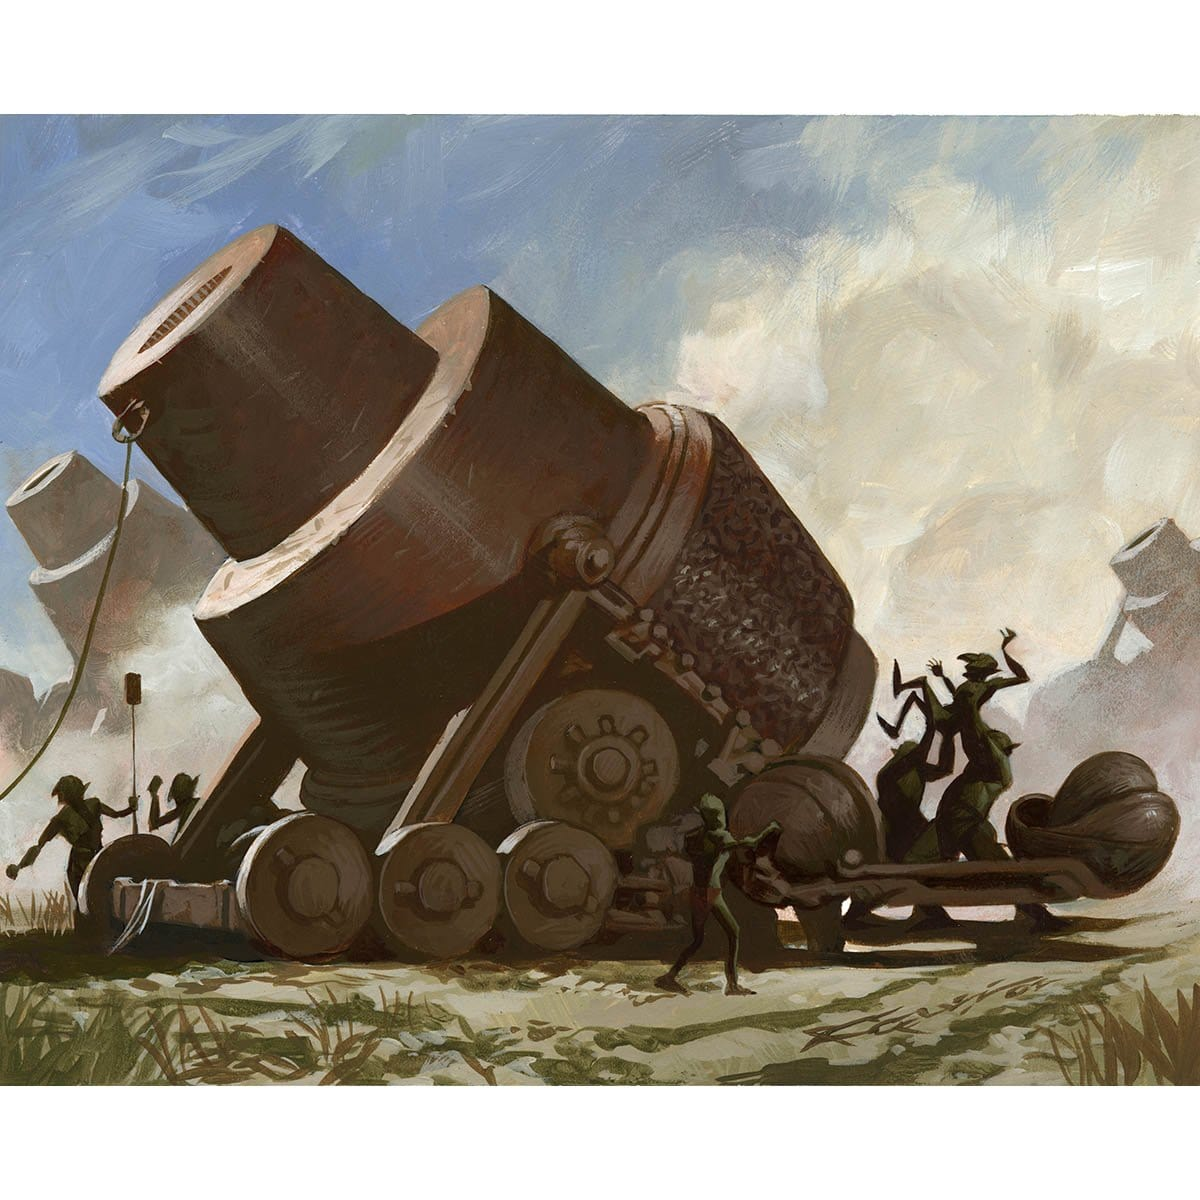 Fodder Cannon Print - Print - Original Magic Art - Accessories for Magic the Gathering and other card games